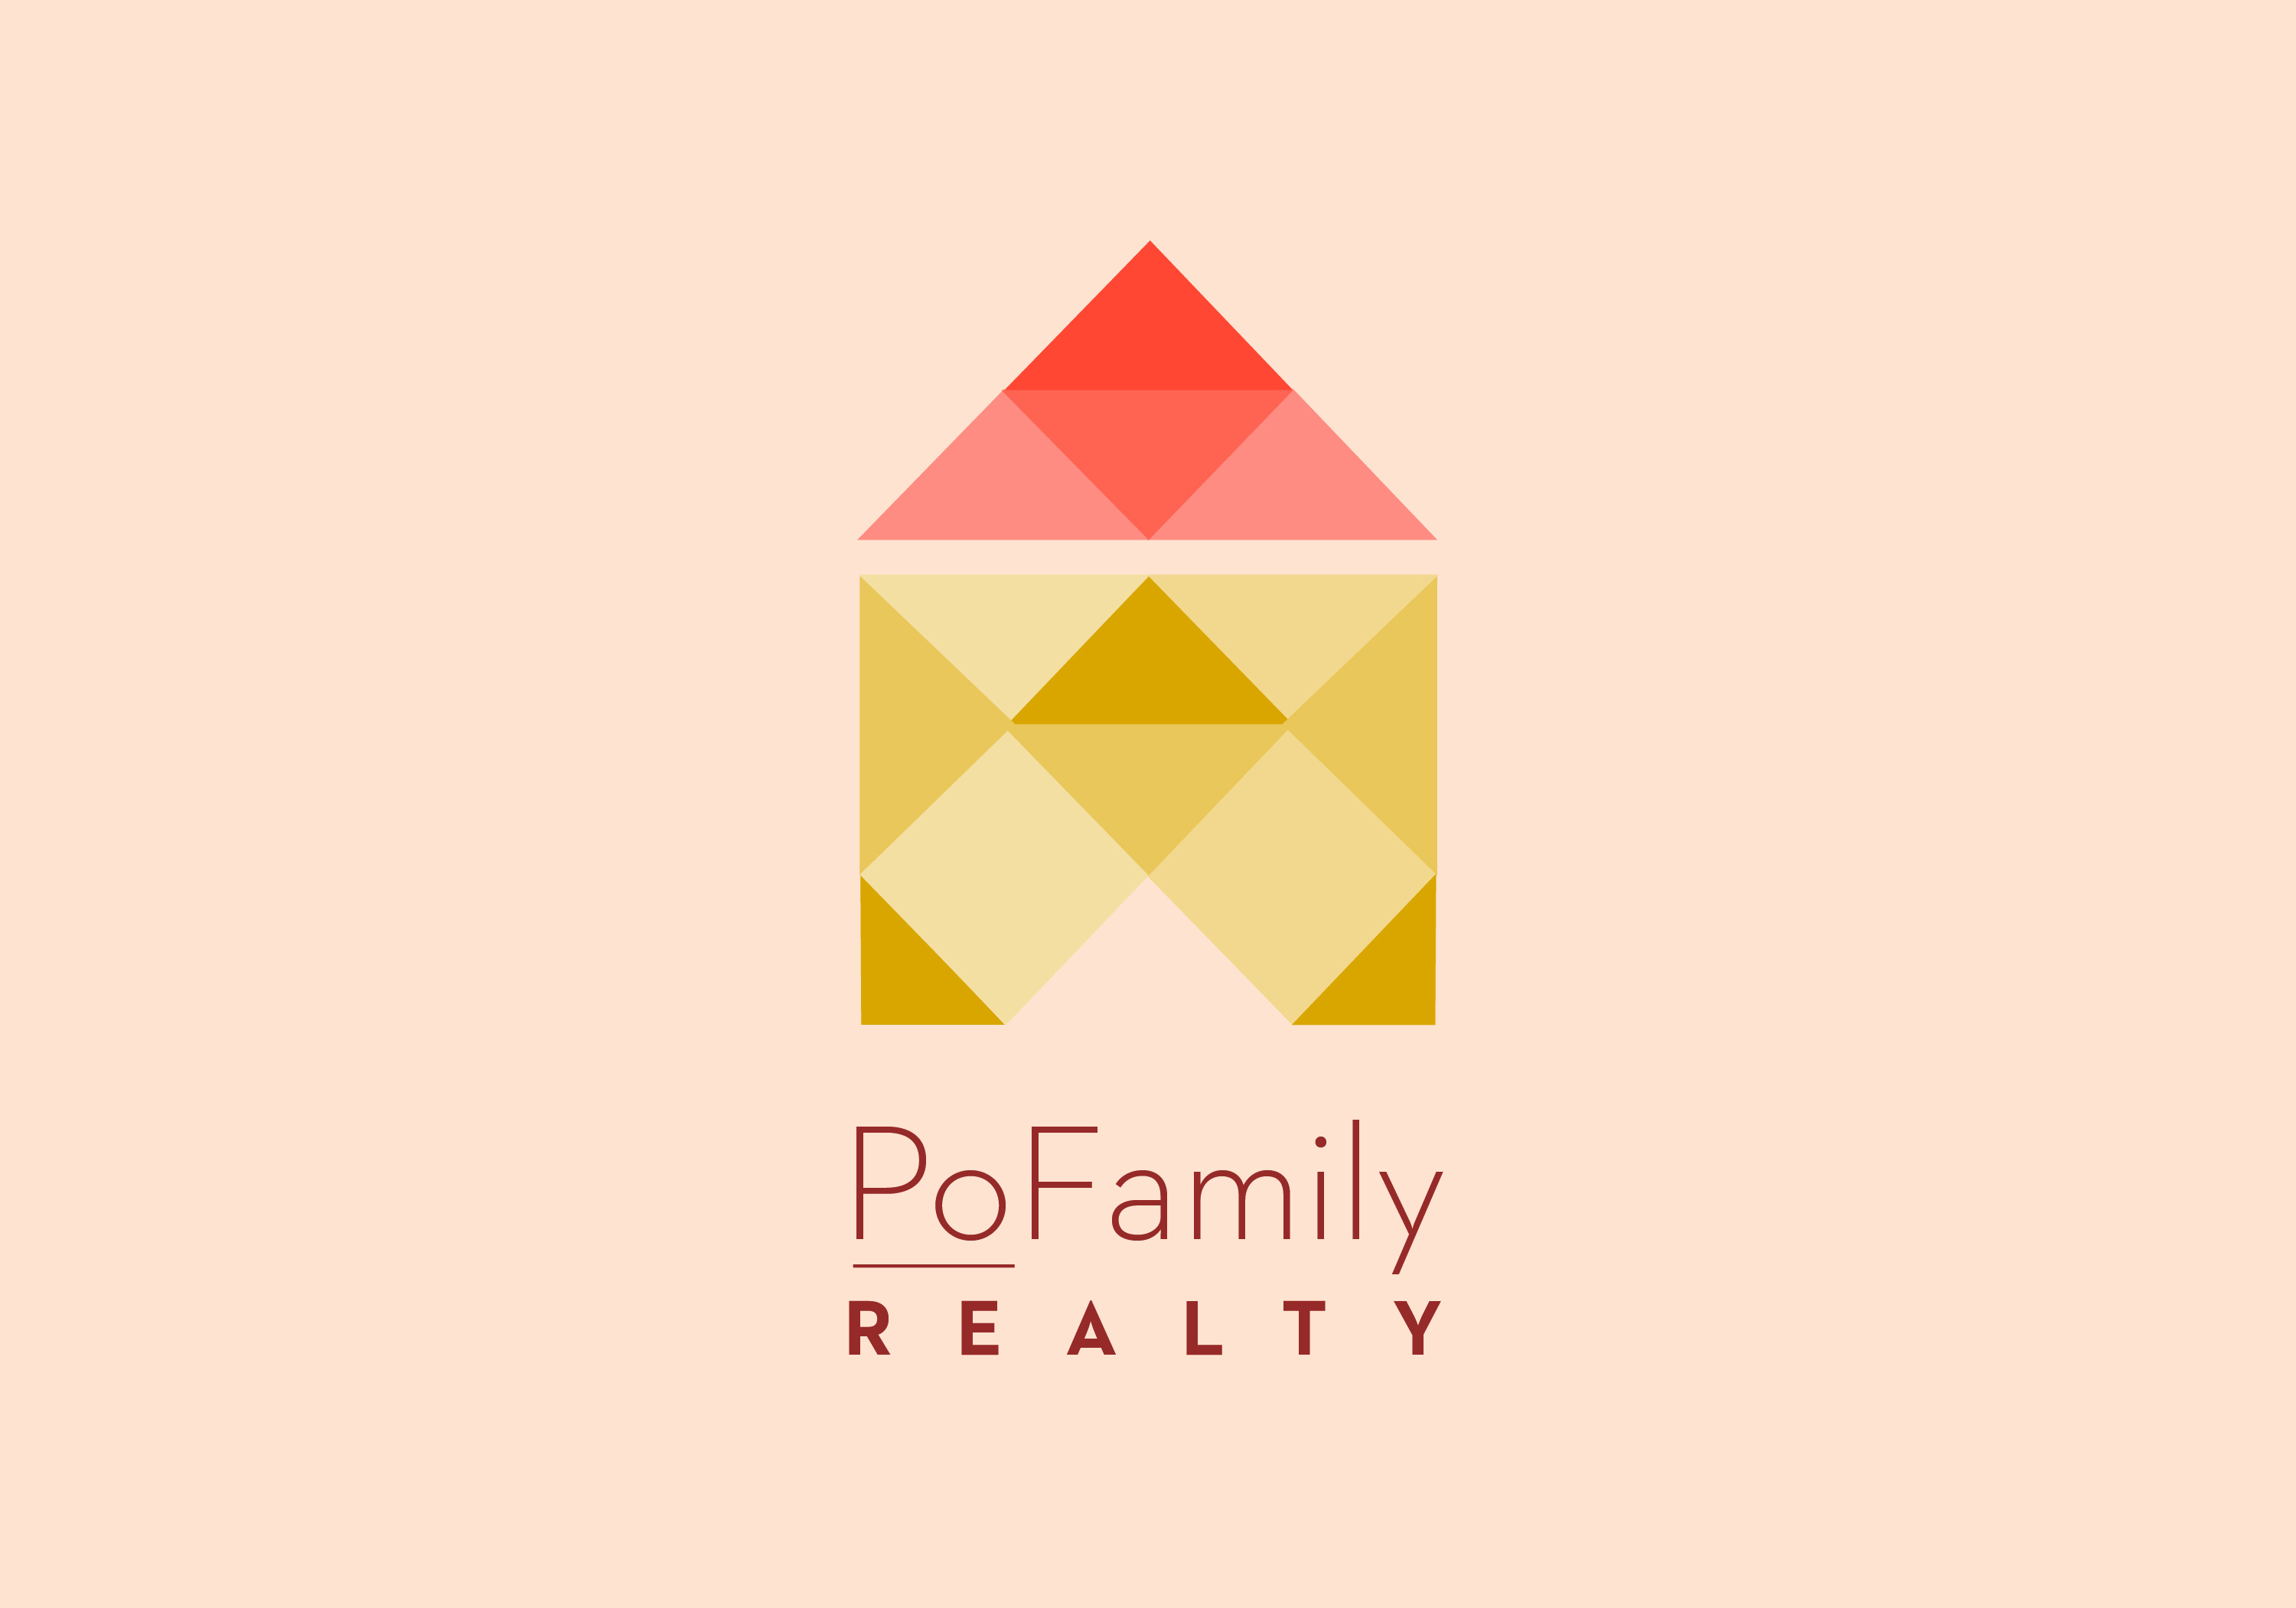 Po Family Realty Logo